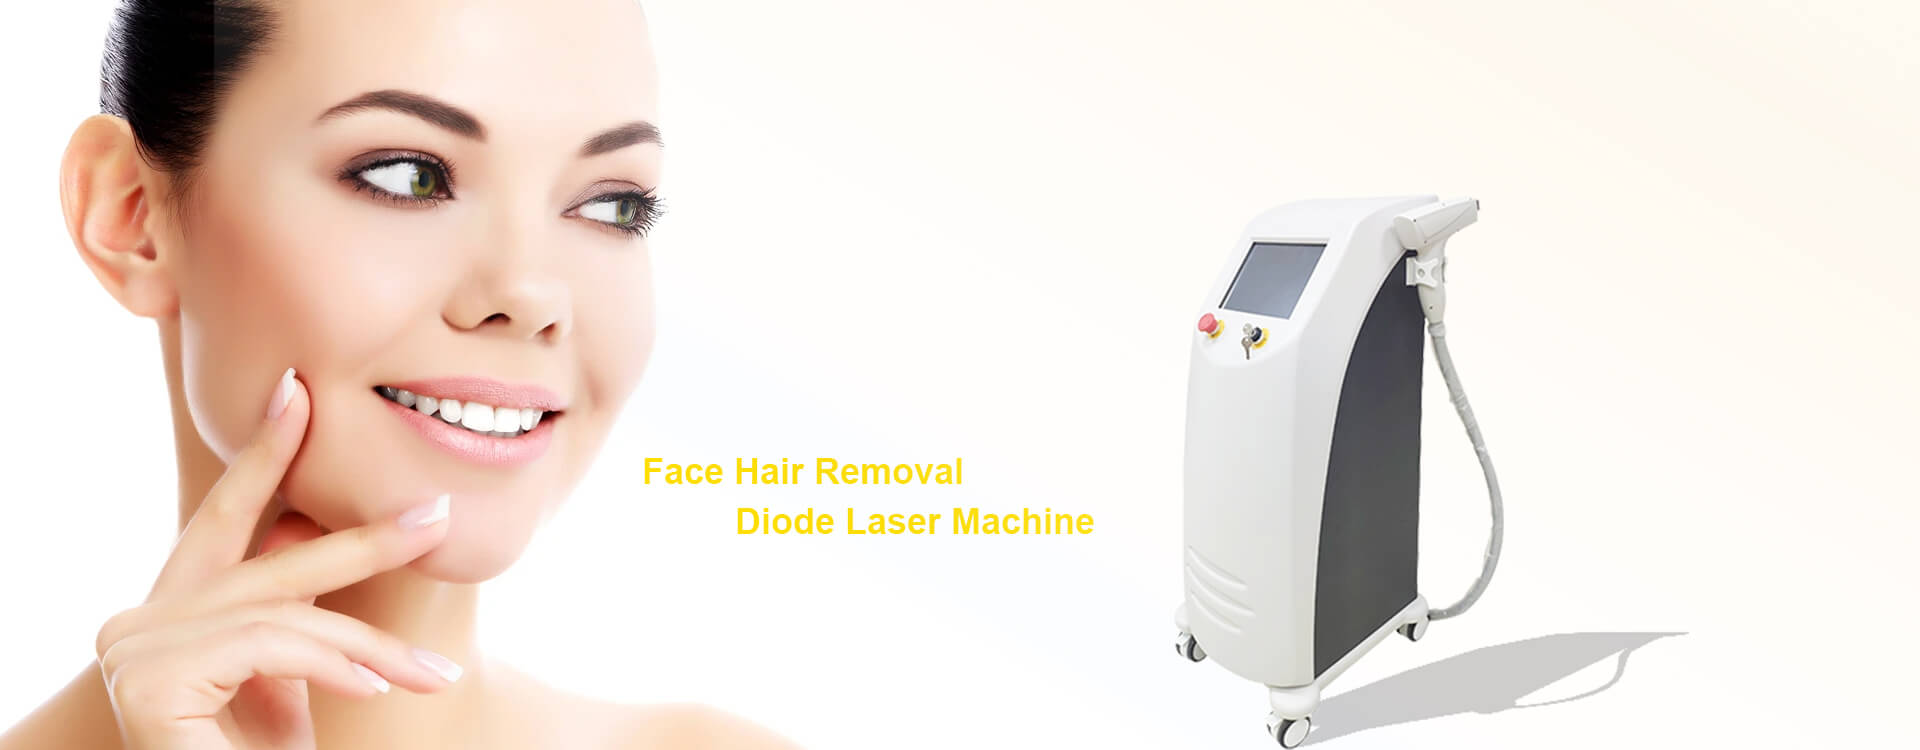 Face Hair Removal Machine